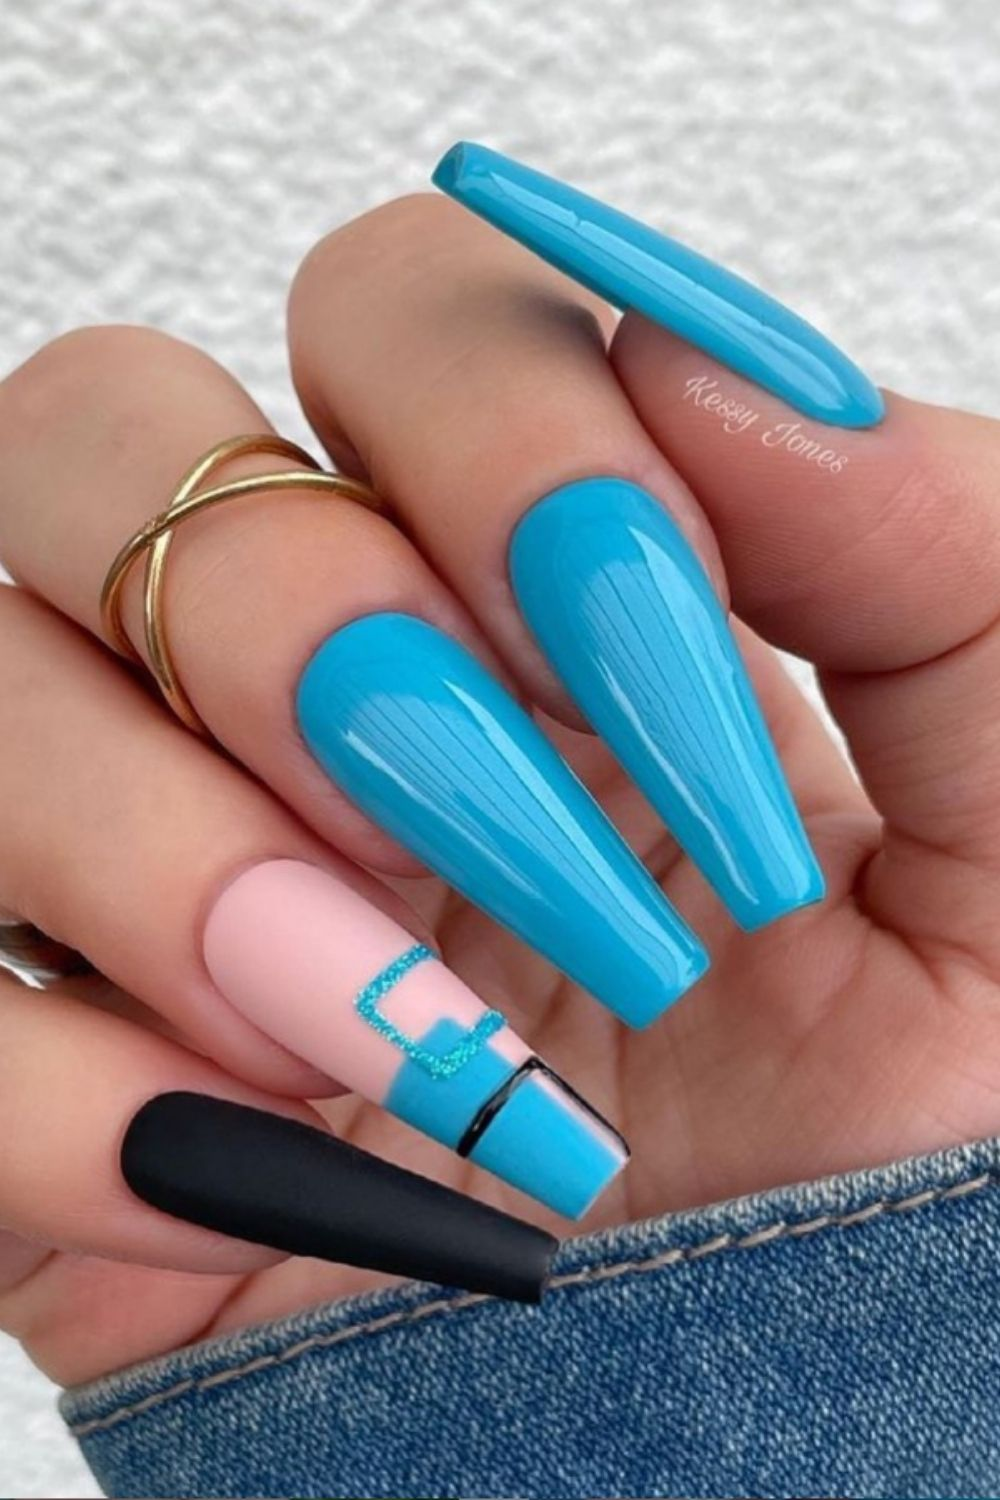 Blue and black coffin nails art